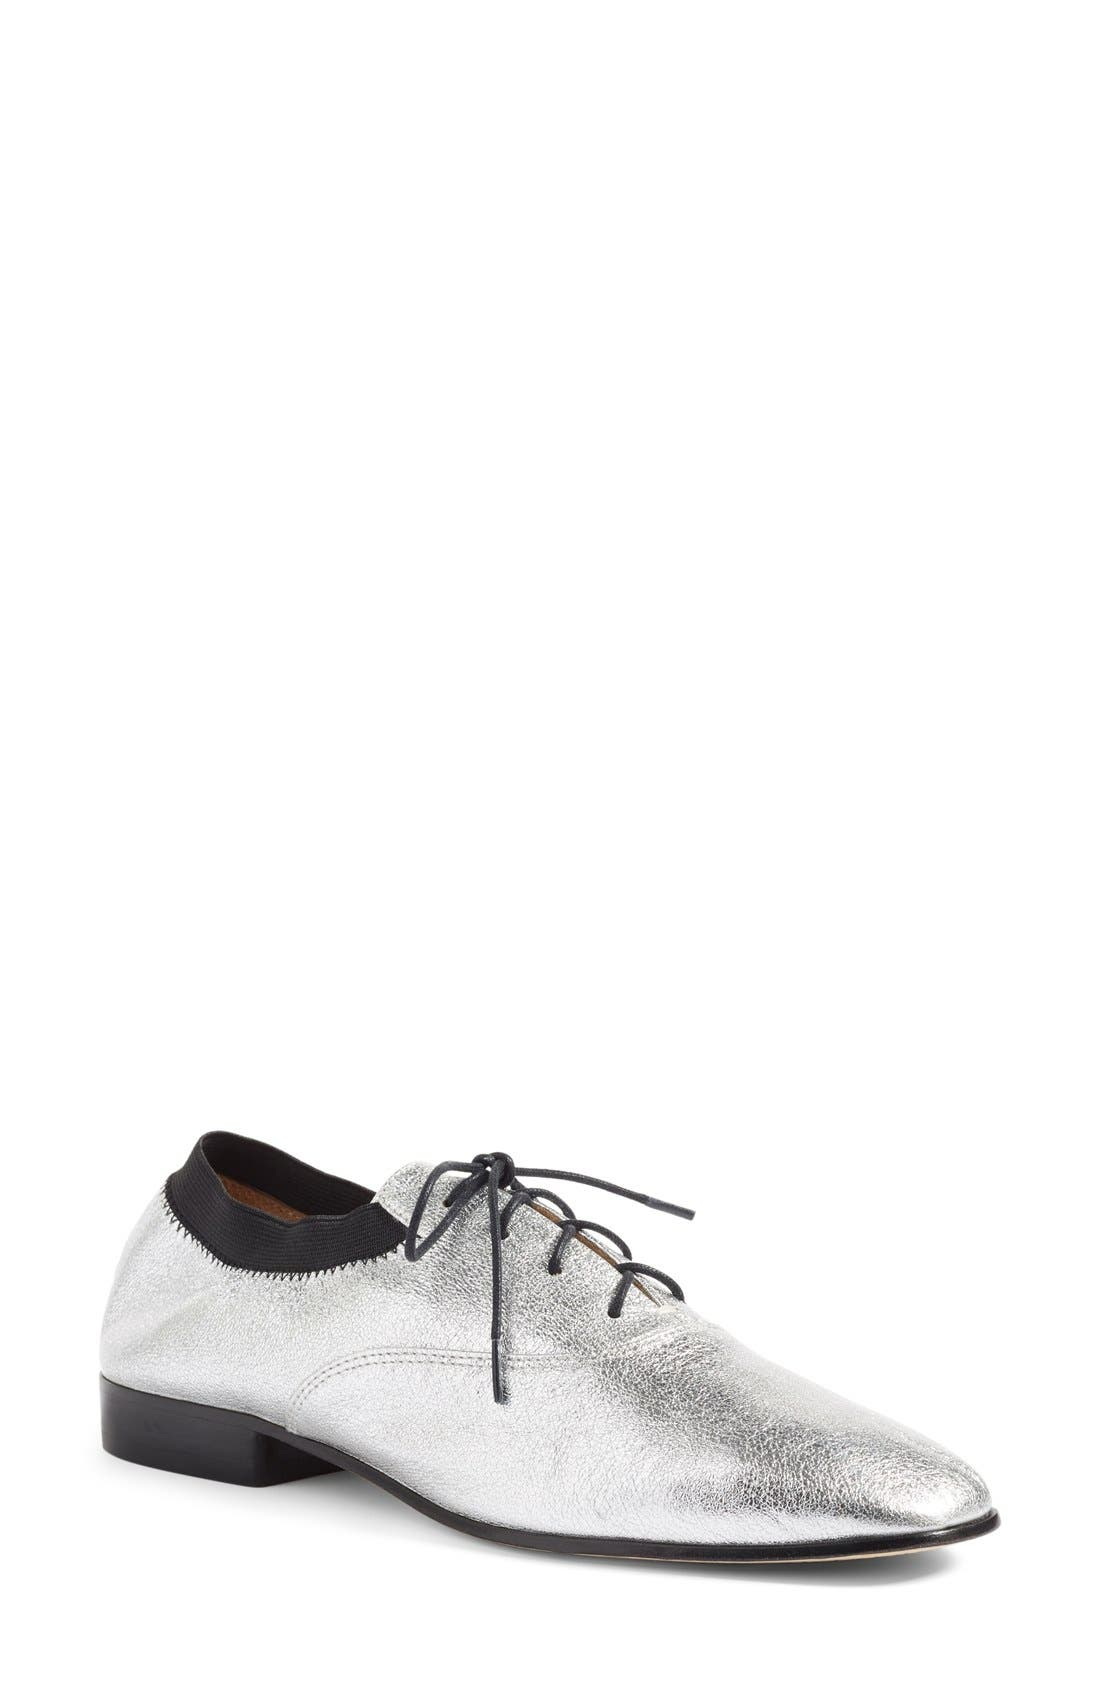 TORY BURCH Bombe Oxford, Main, color, 041